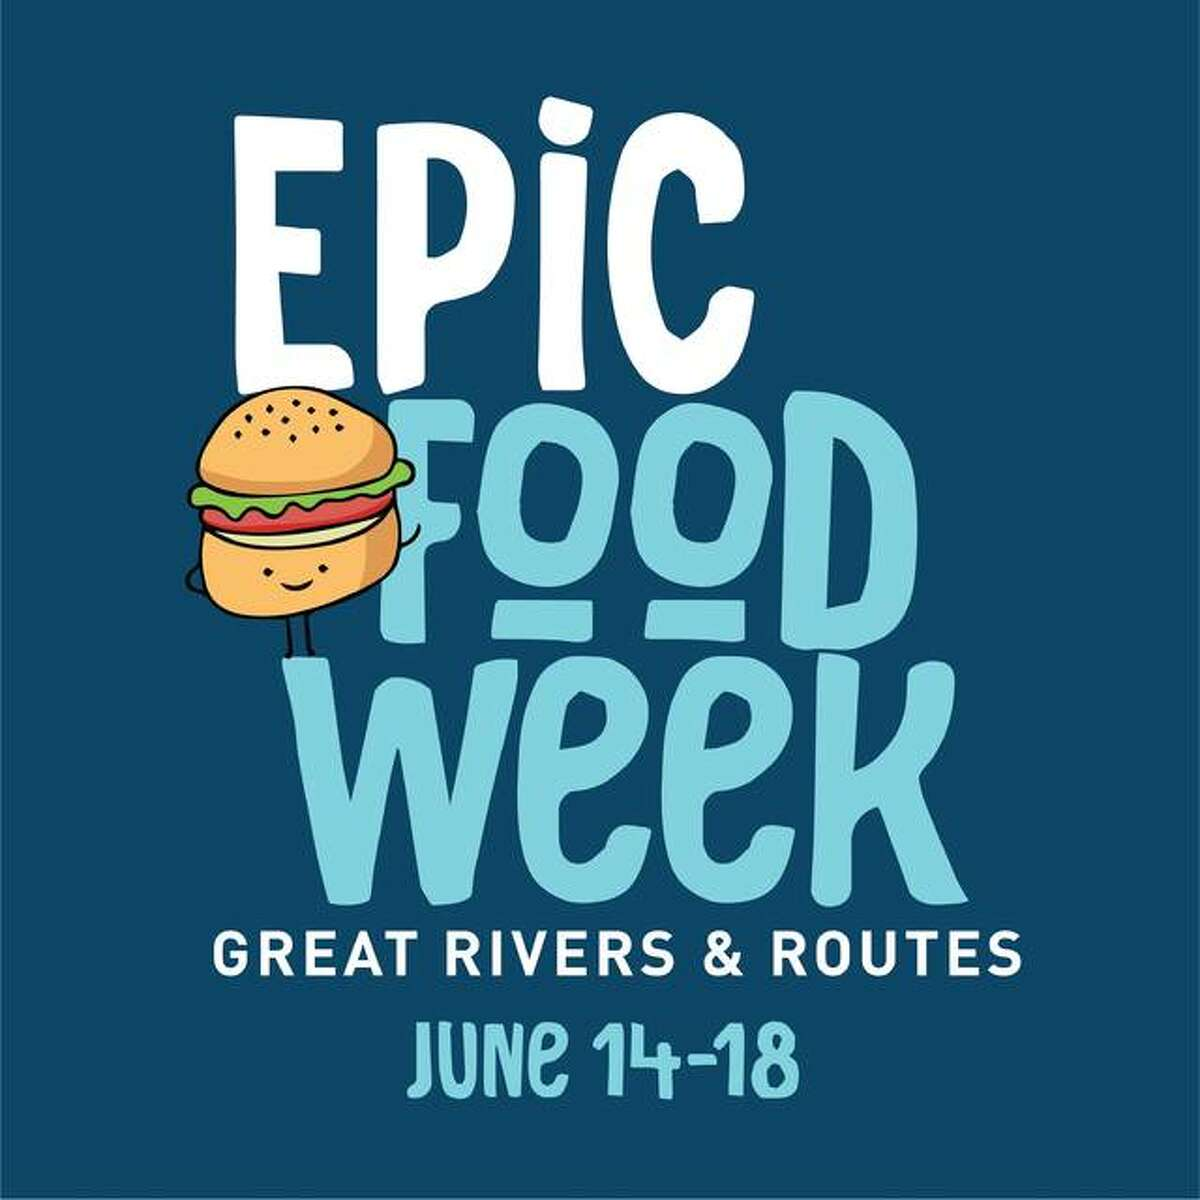 The Great Rivers & Routes Tourism Bureau this summer is planning Epic Burger Week, Epic Ice Cream Week and Epic Pizza Week to showcase Riverbend foods.